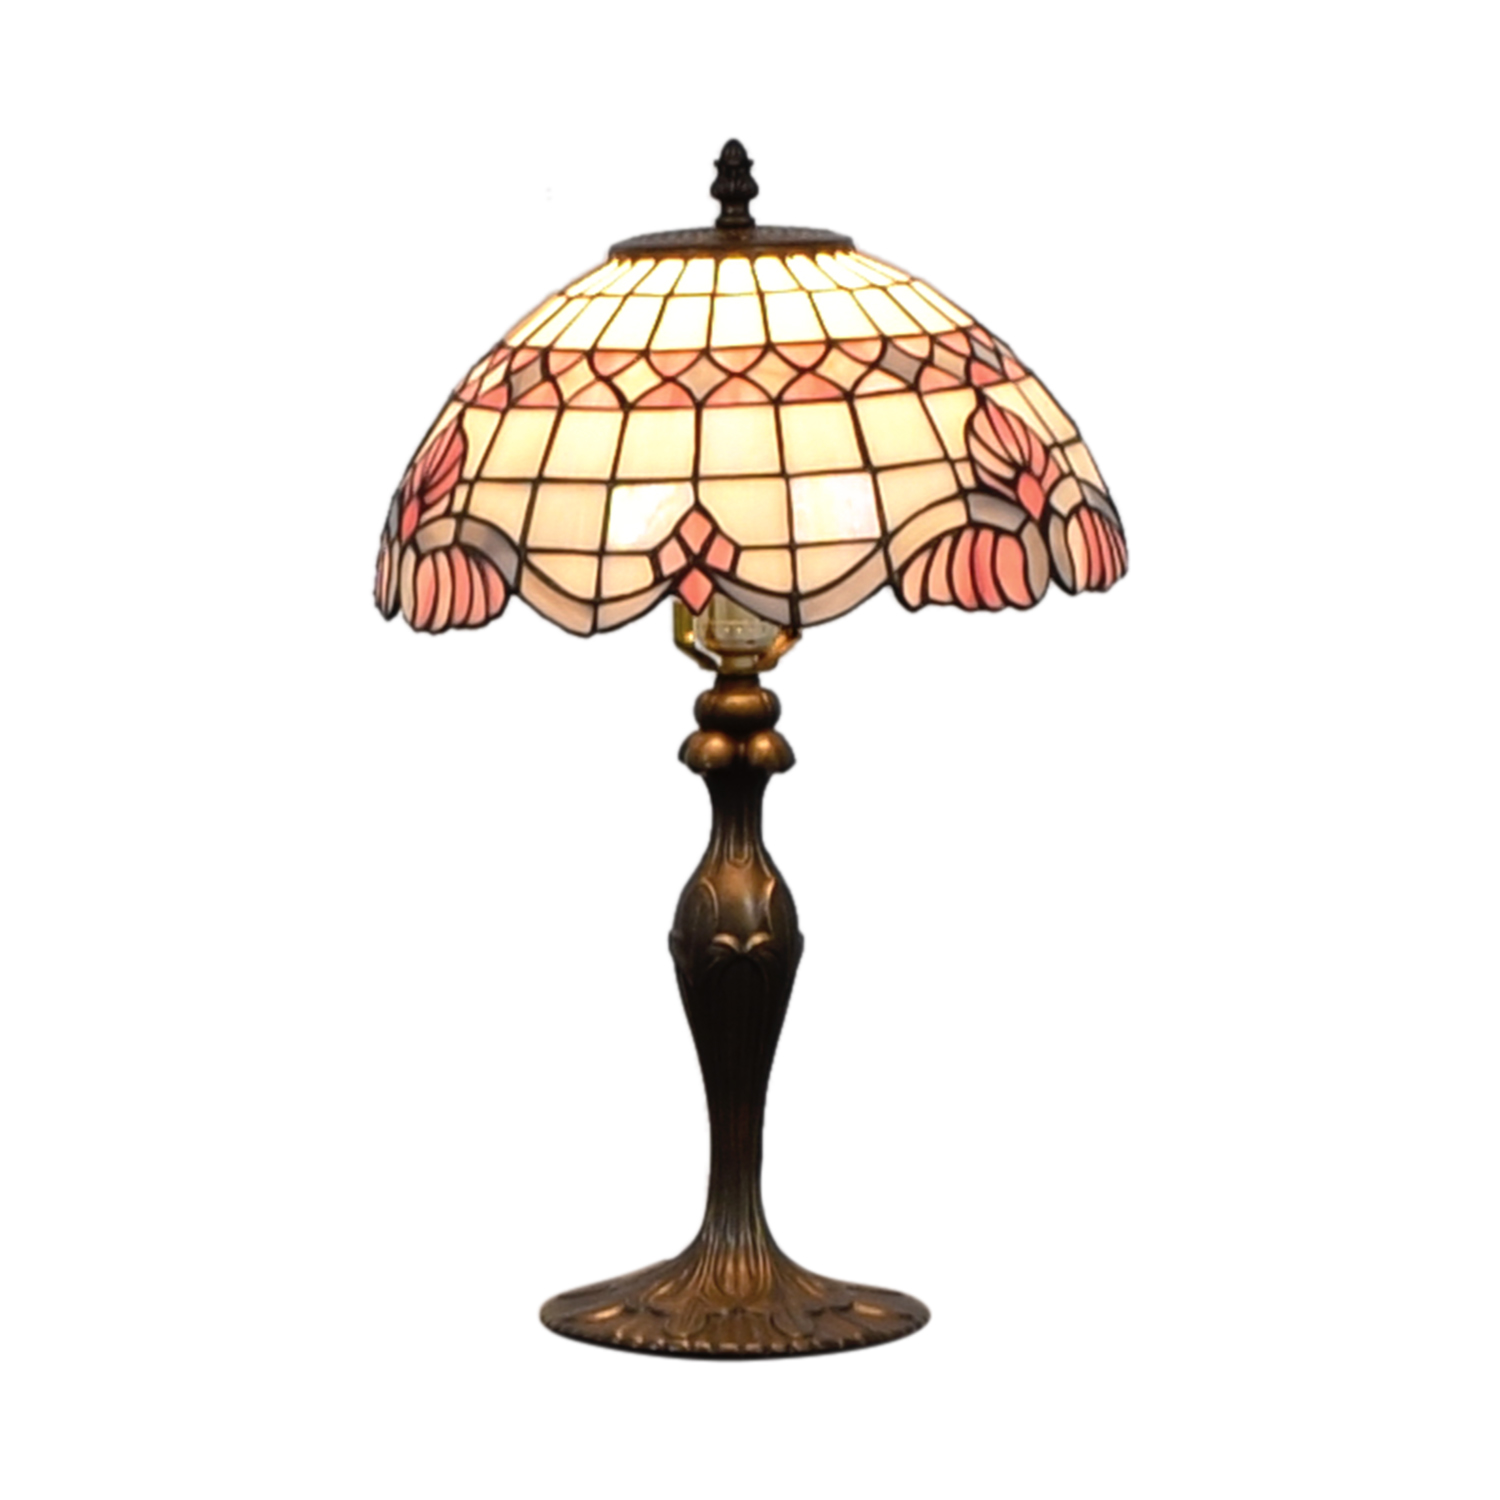 buy Tiffany Inspired Stained Glass Table Lamp